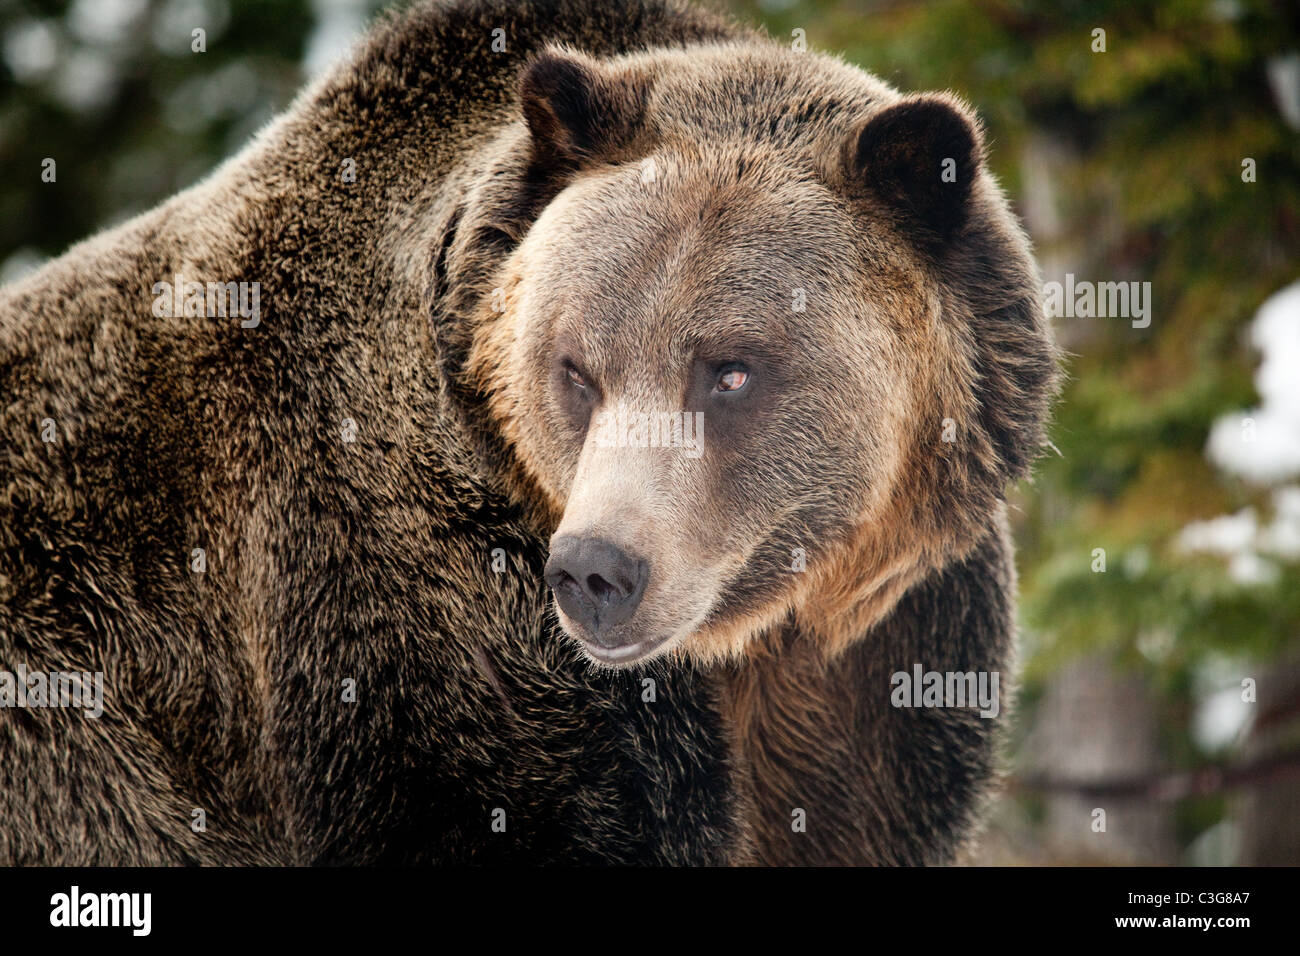 Grizzly bear (Ursus arctos horribilis) in outdoor closeup view. Stock Photo